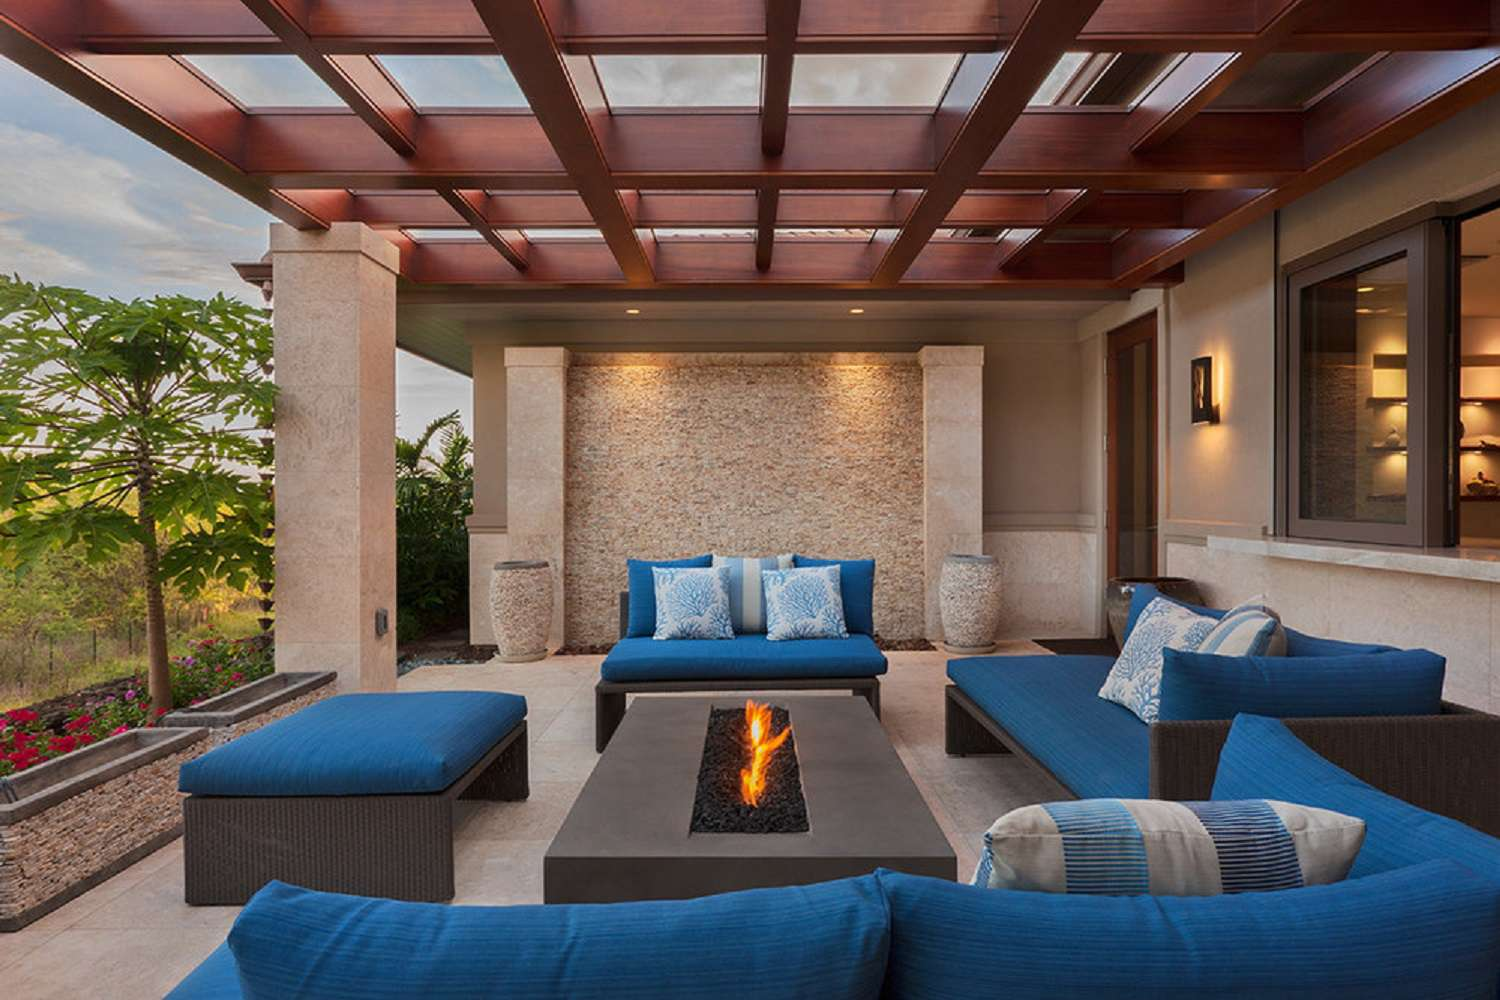 Pergola with outdoor firepit